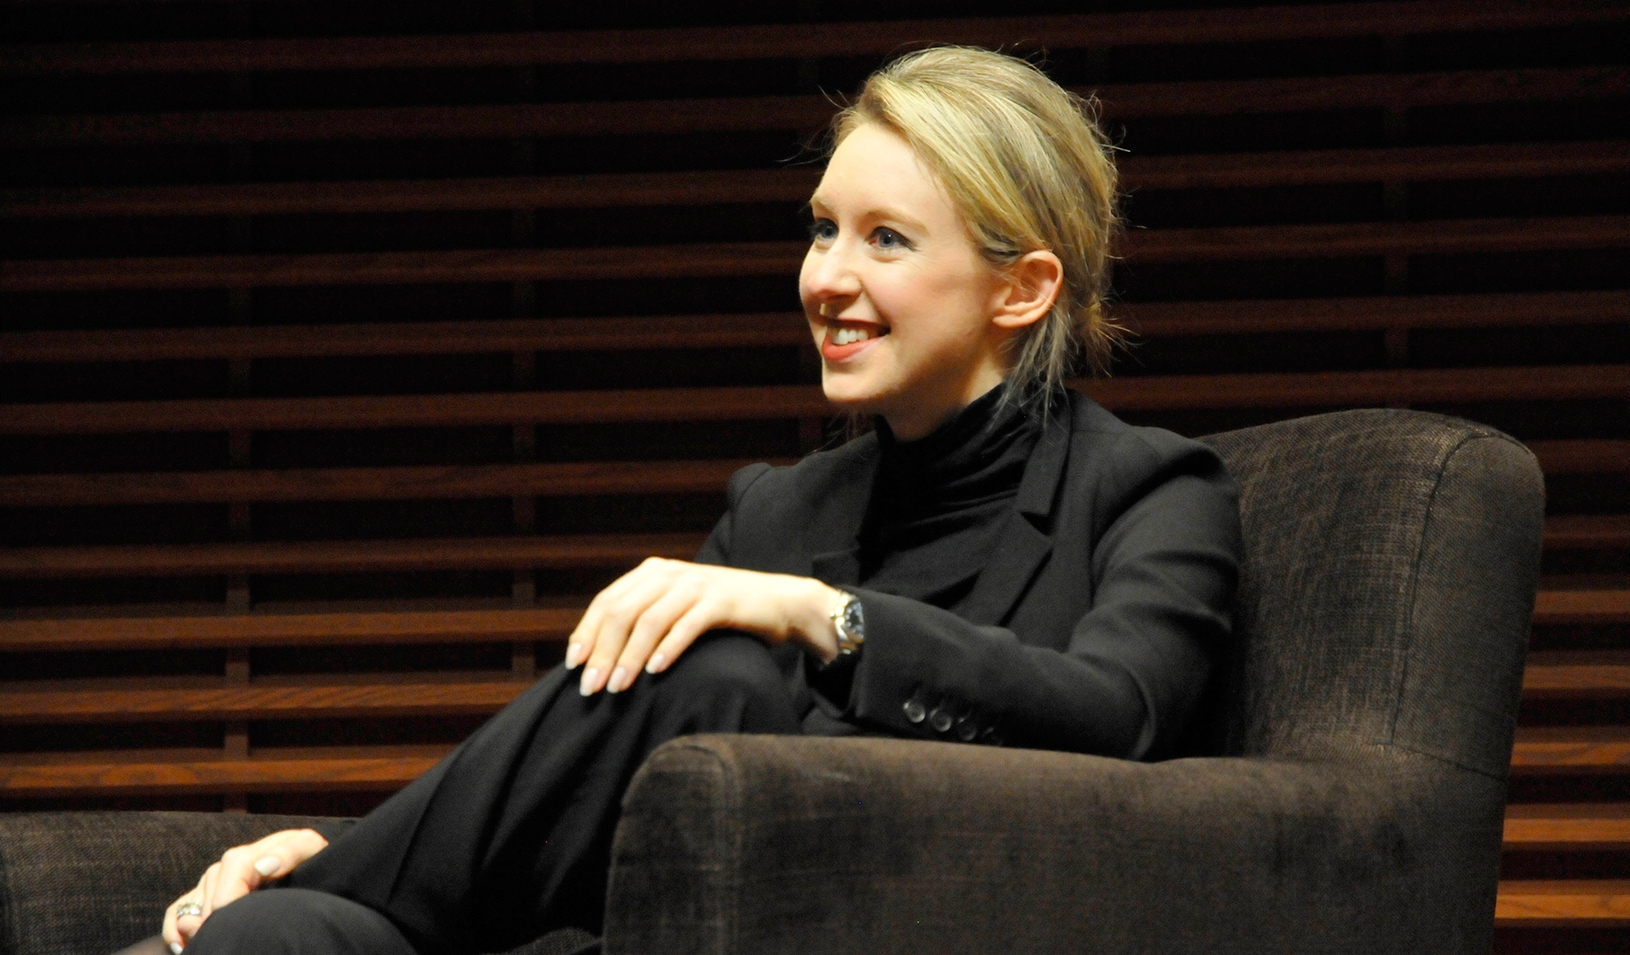 Elizabeth Holmes went from a Silicon Valley darling to being charged with fraud Heres a look back at the beleaguered history of Holmes and her startup